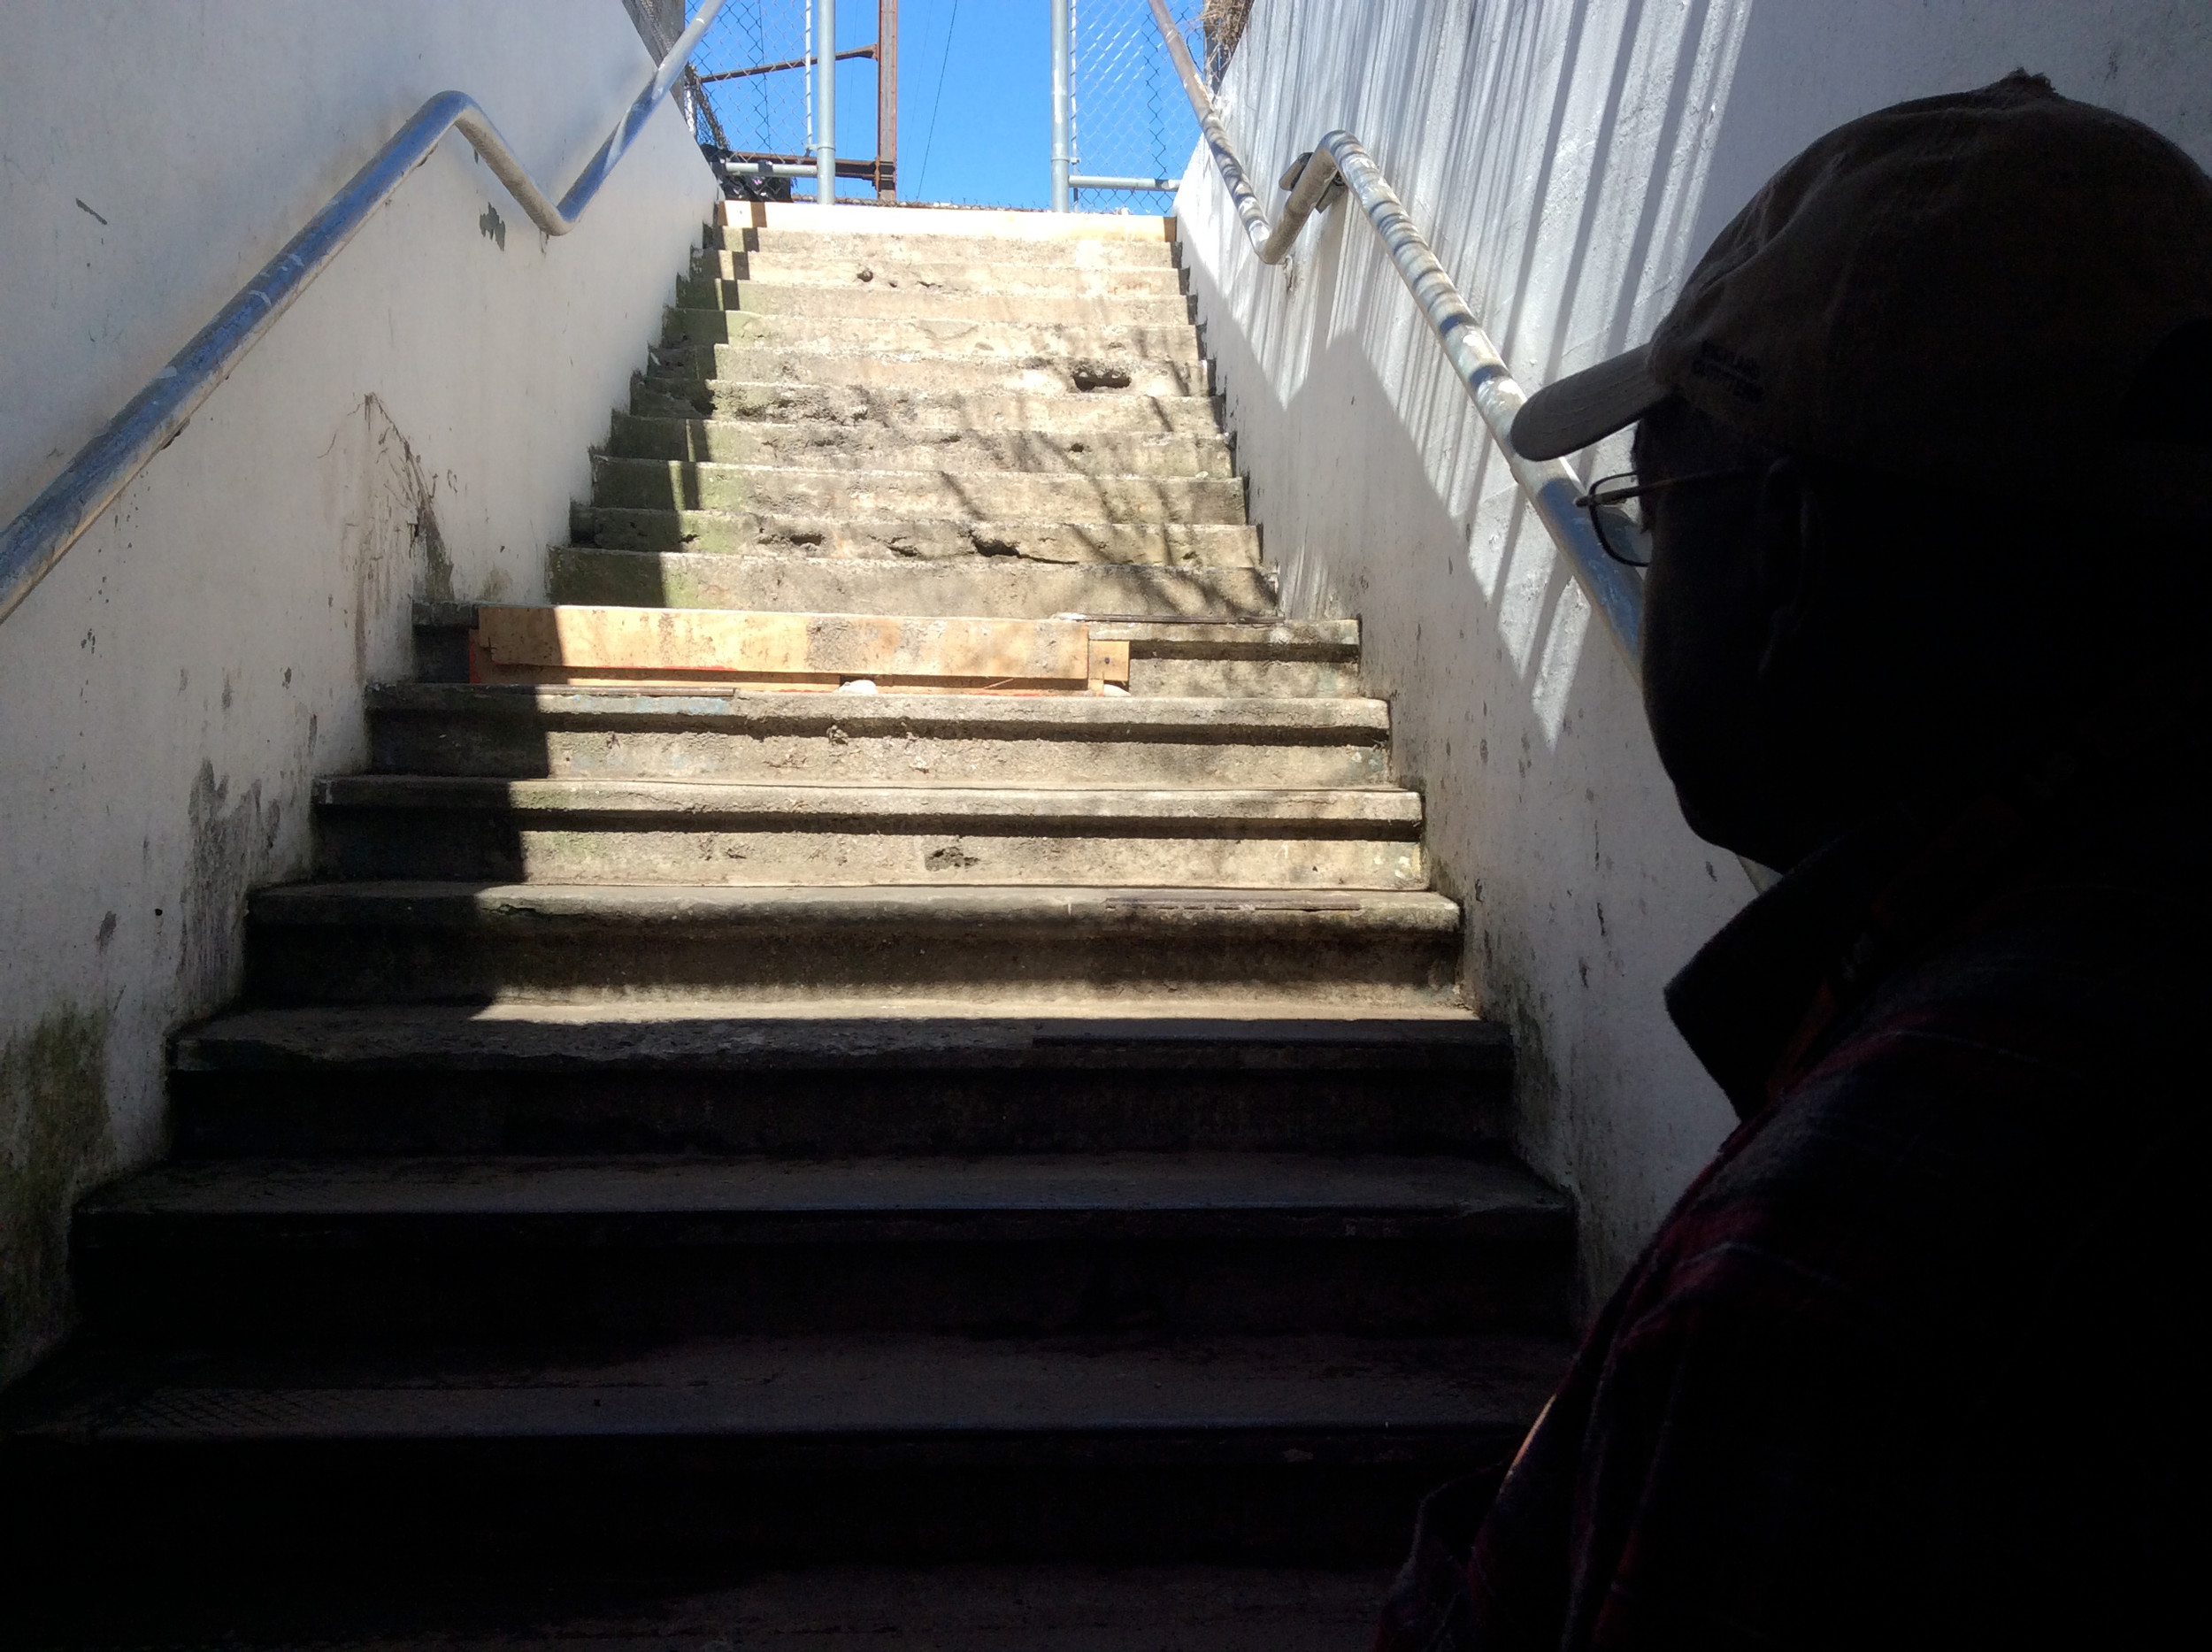 Phil Bennett looks up the stairs on the Karns side to see boards that have been attached to the steps.